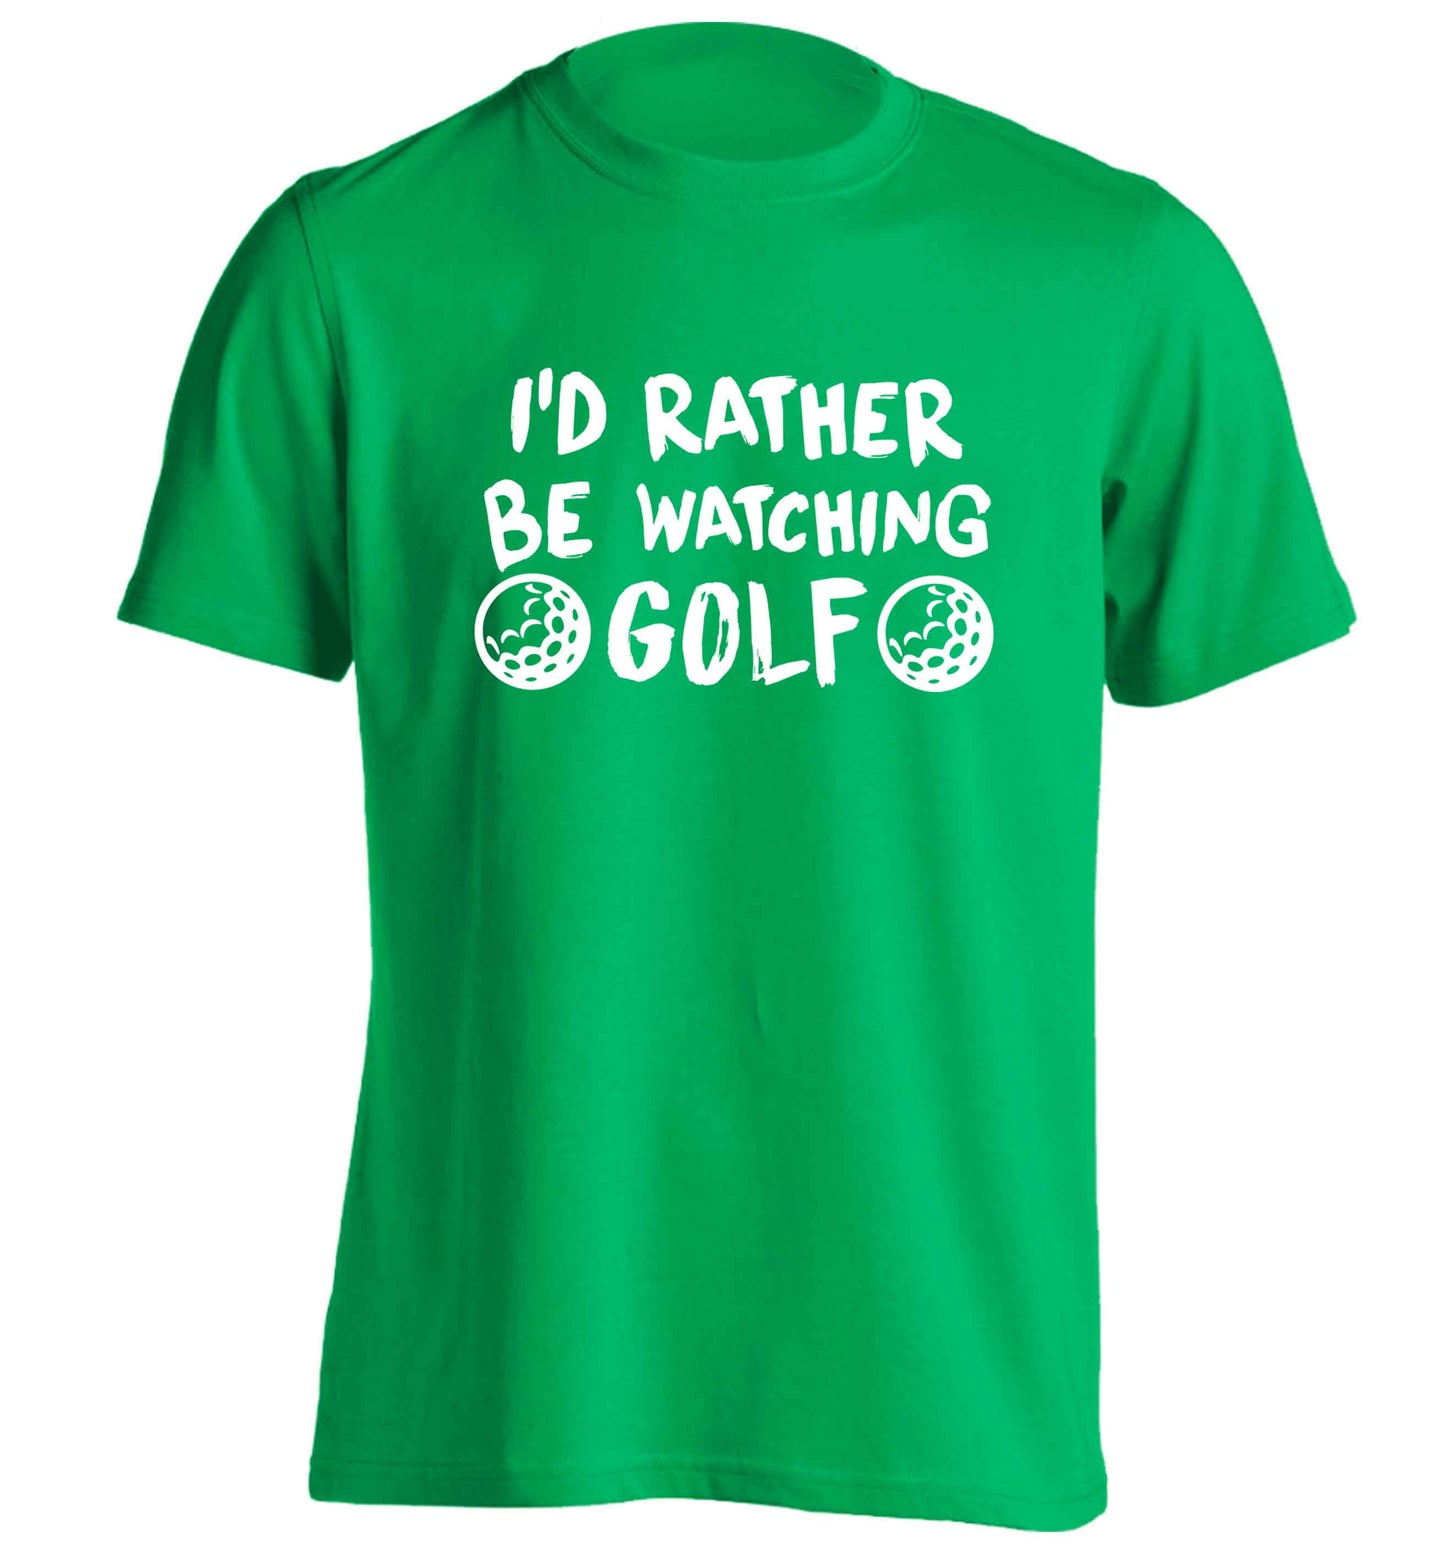 I'd rather be watching golf adults unisex green Tshirt 2XL